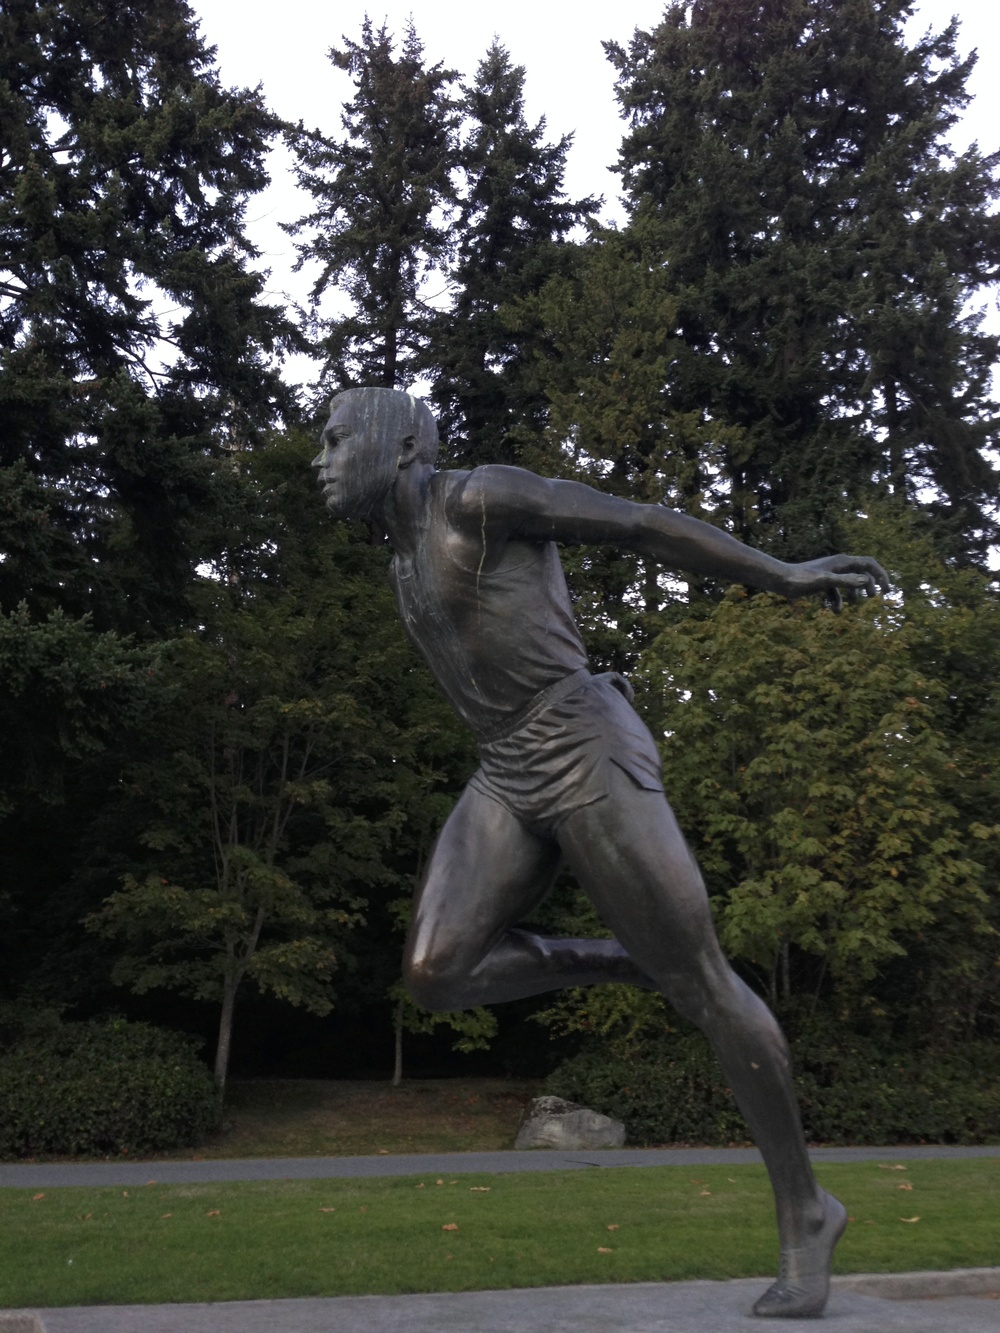 Jerome Statue at Brockton Point in Stanley Park